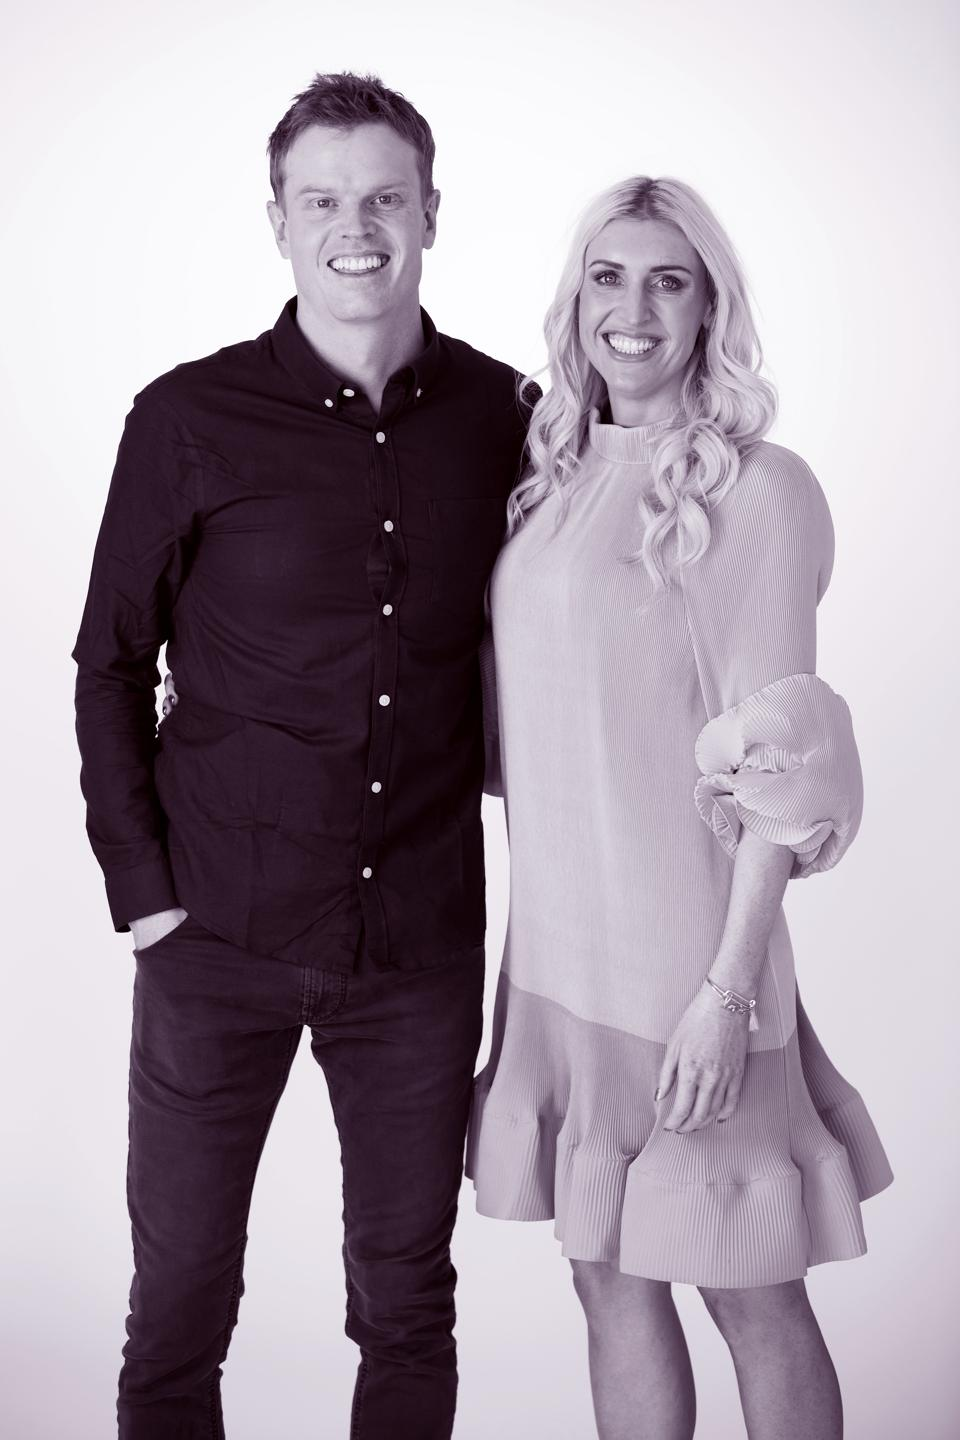 Nick and Anna Mowbray, the sibling cofounders of Zuru toys.